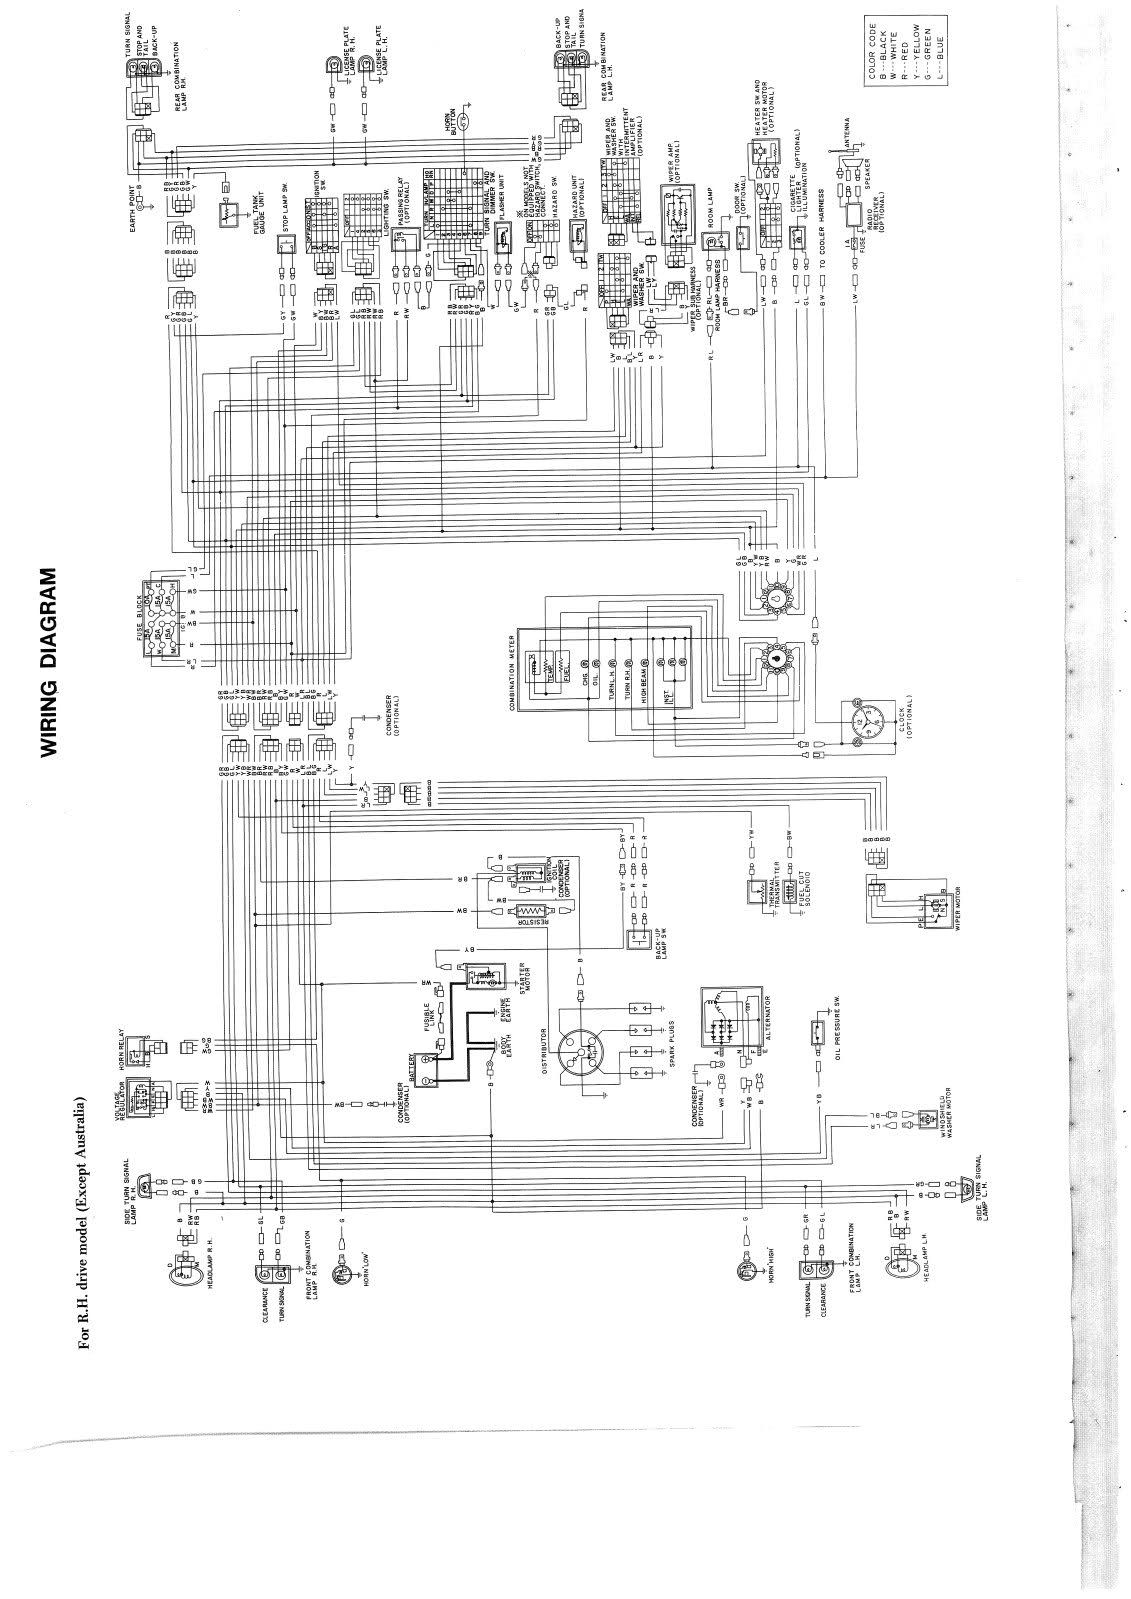 small resolution of wiring diagram for nissan 1400 bakkie 6